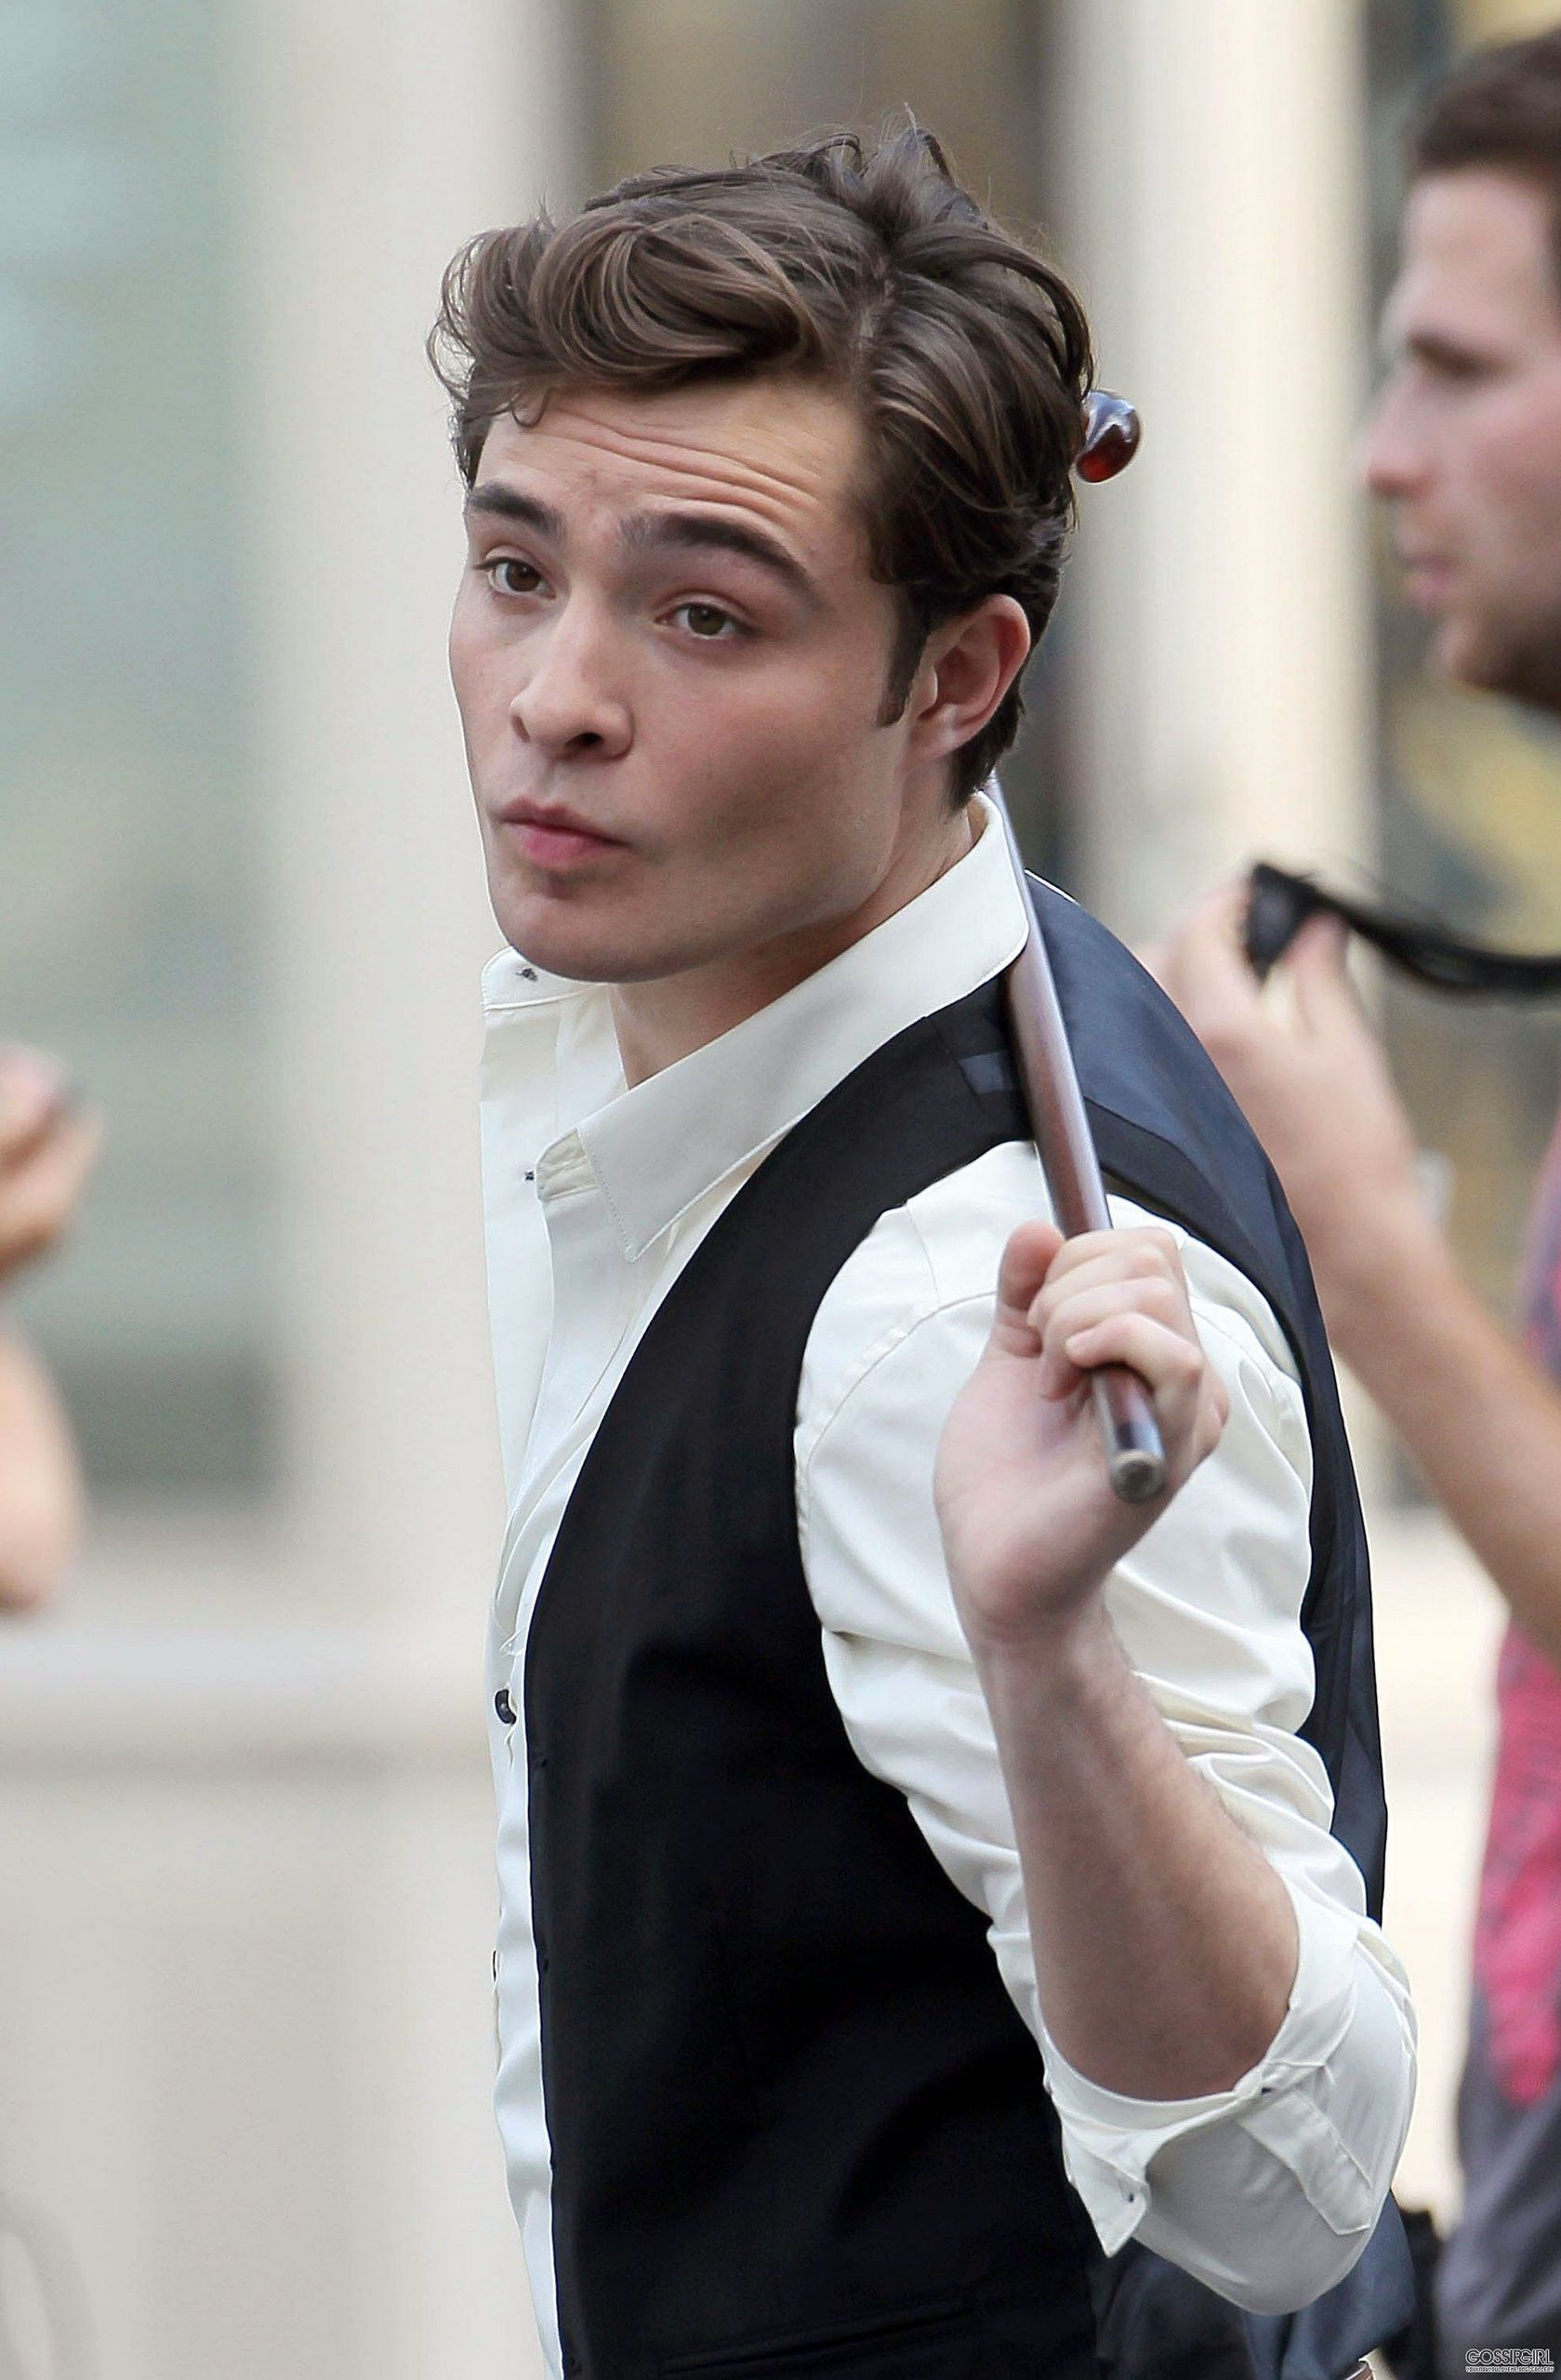 Google Image Result for http://images4.fanpop.com/image/photos/17900000/C-B-from-Egoist-chuck-bass-17906270-1679-2560.jpg